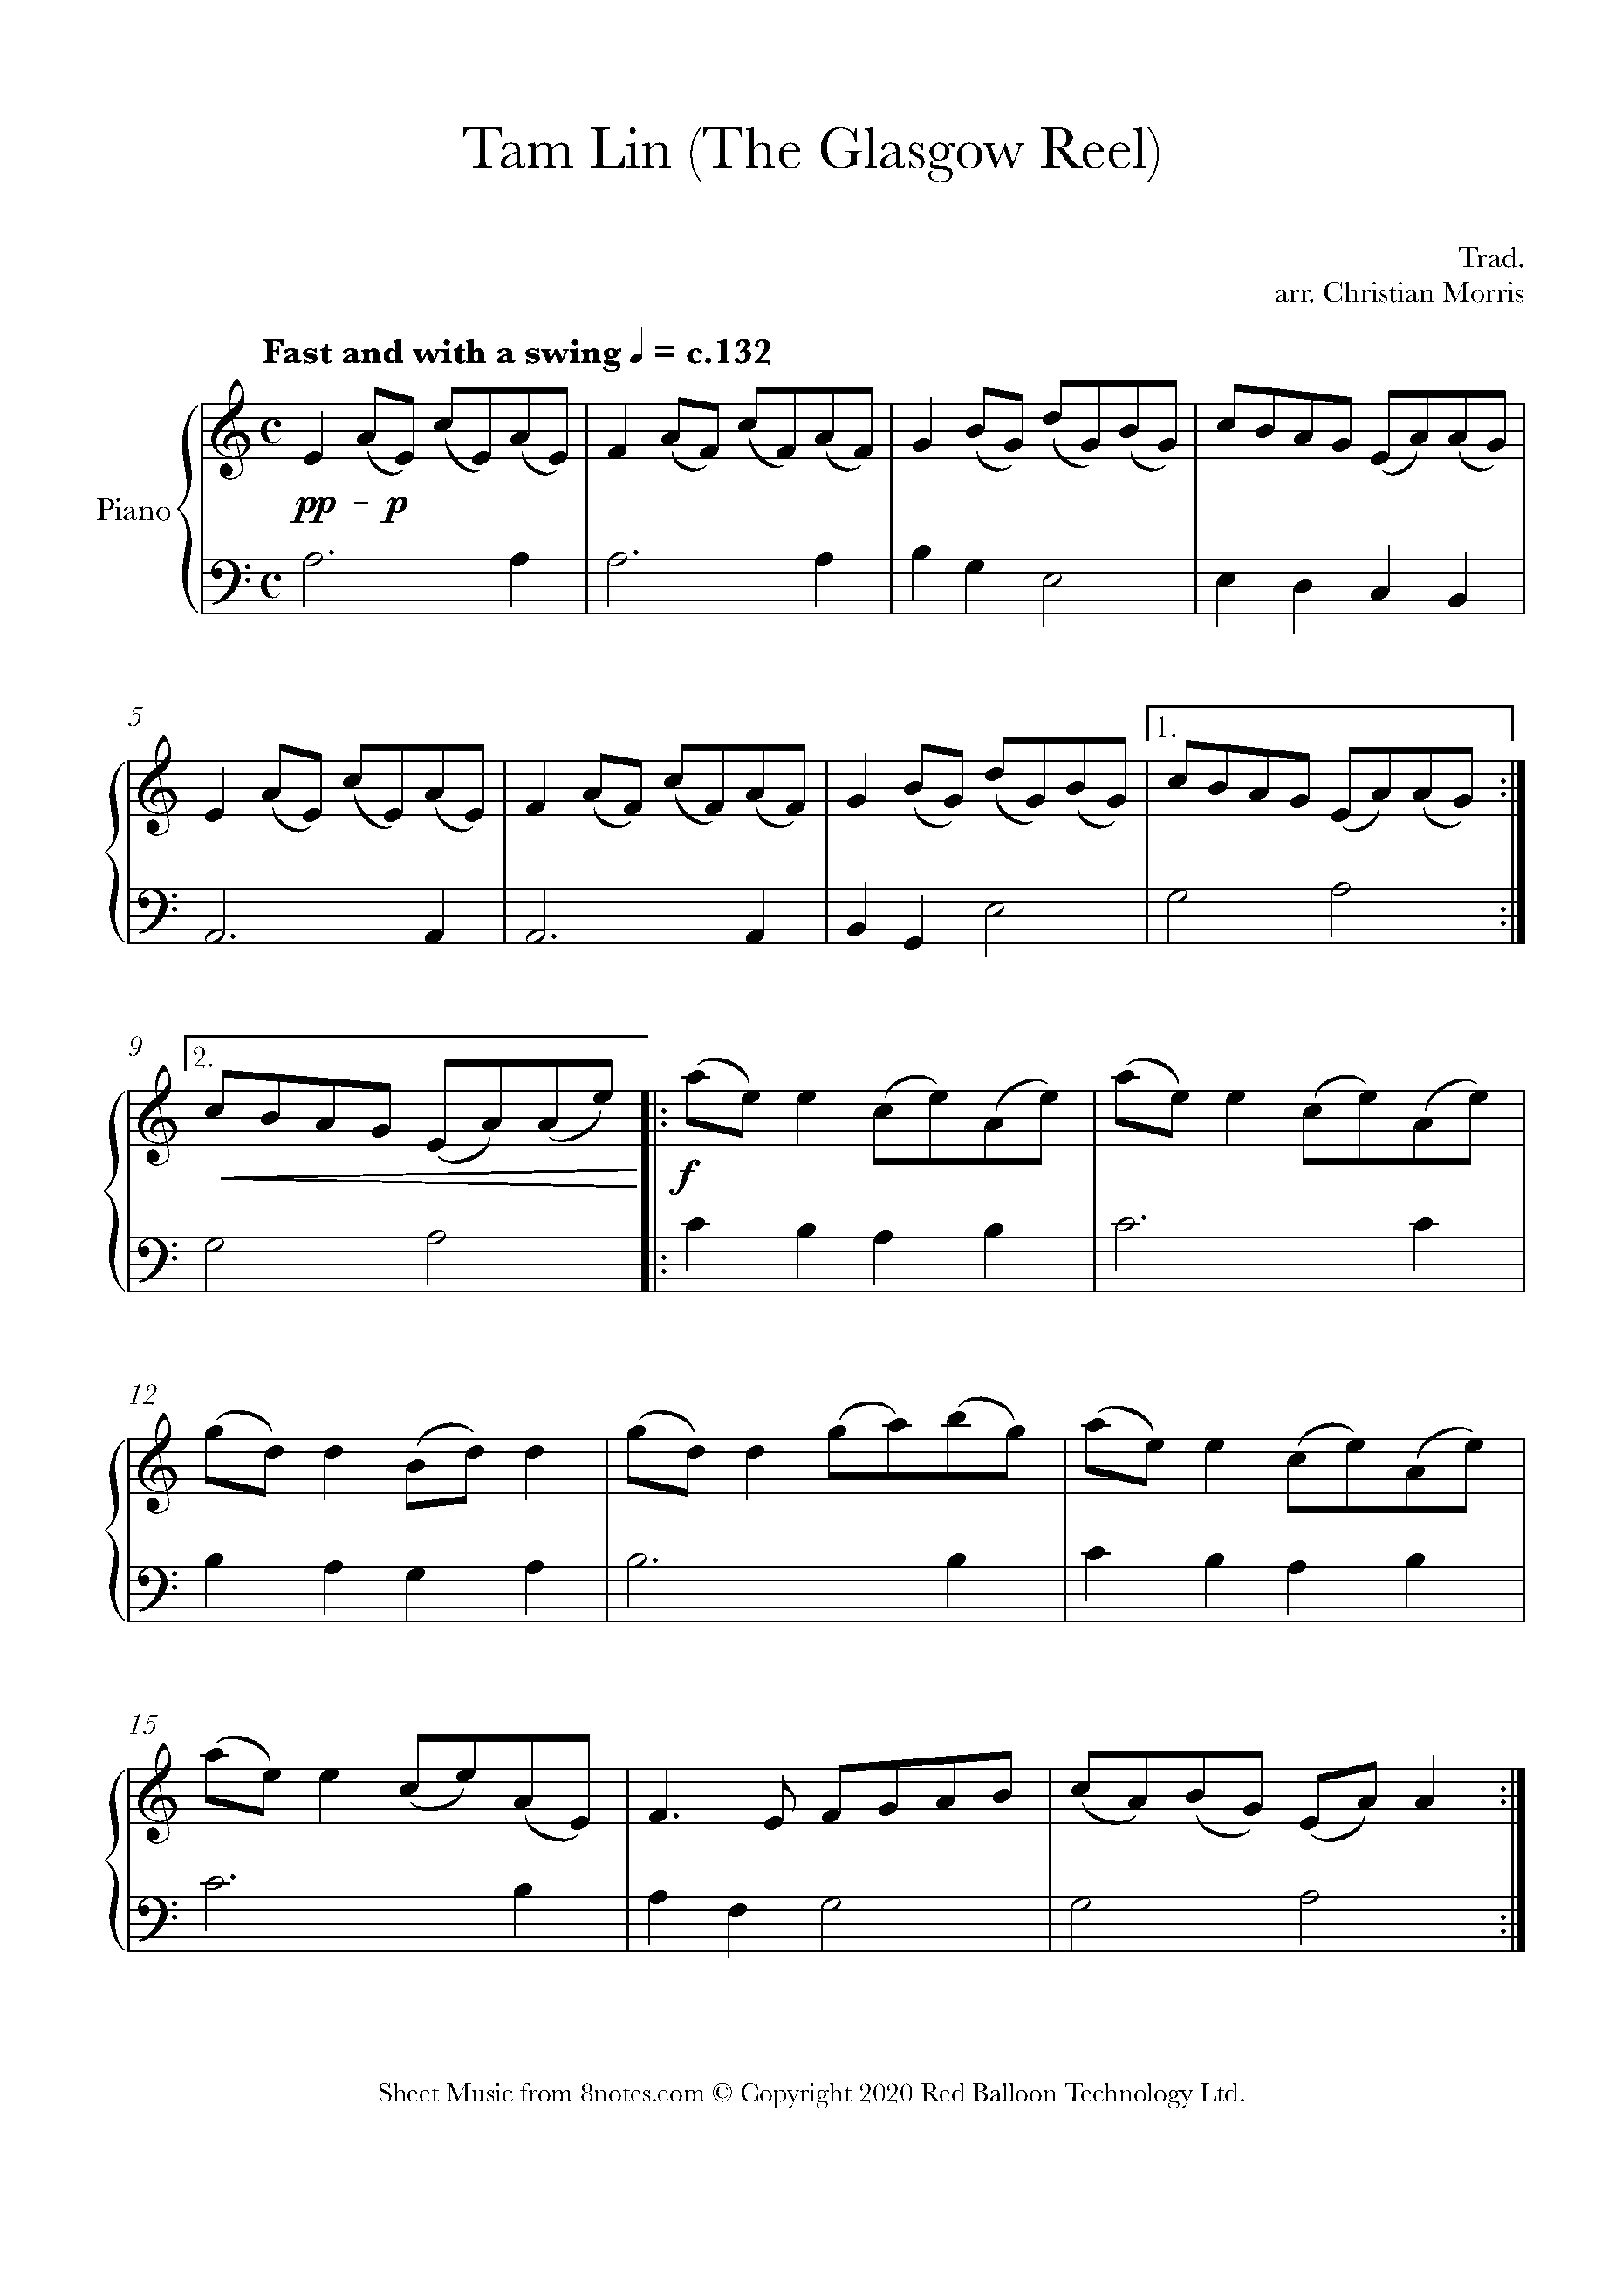 tam lin (the glasgow reel) sheet music for piano - 8notes.com  8notes